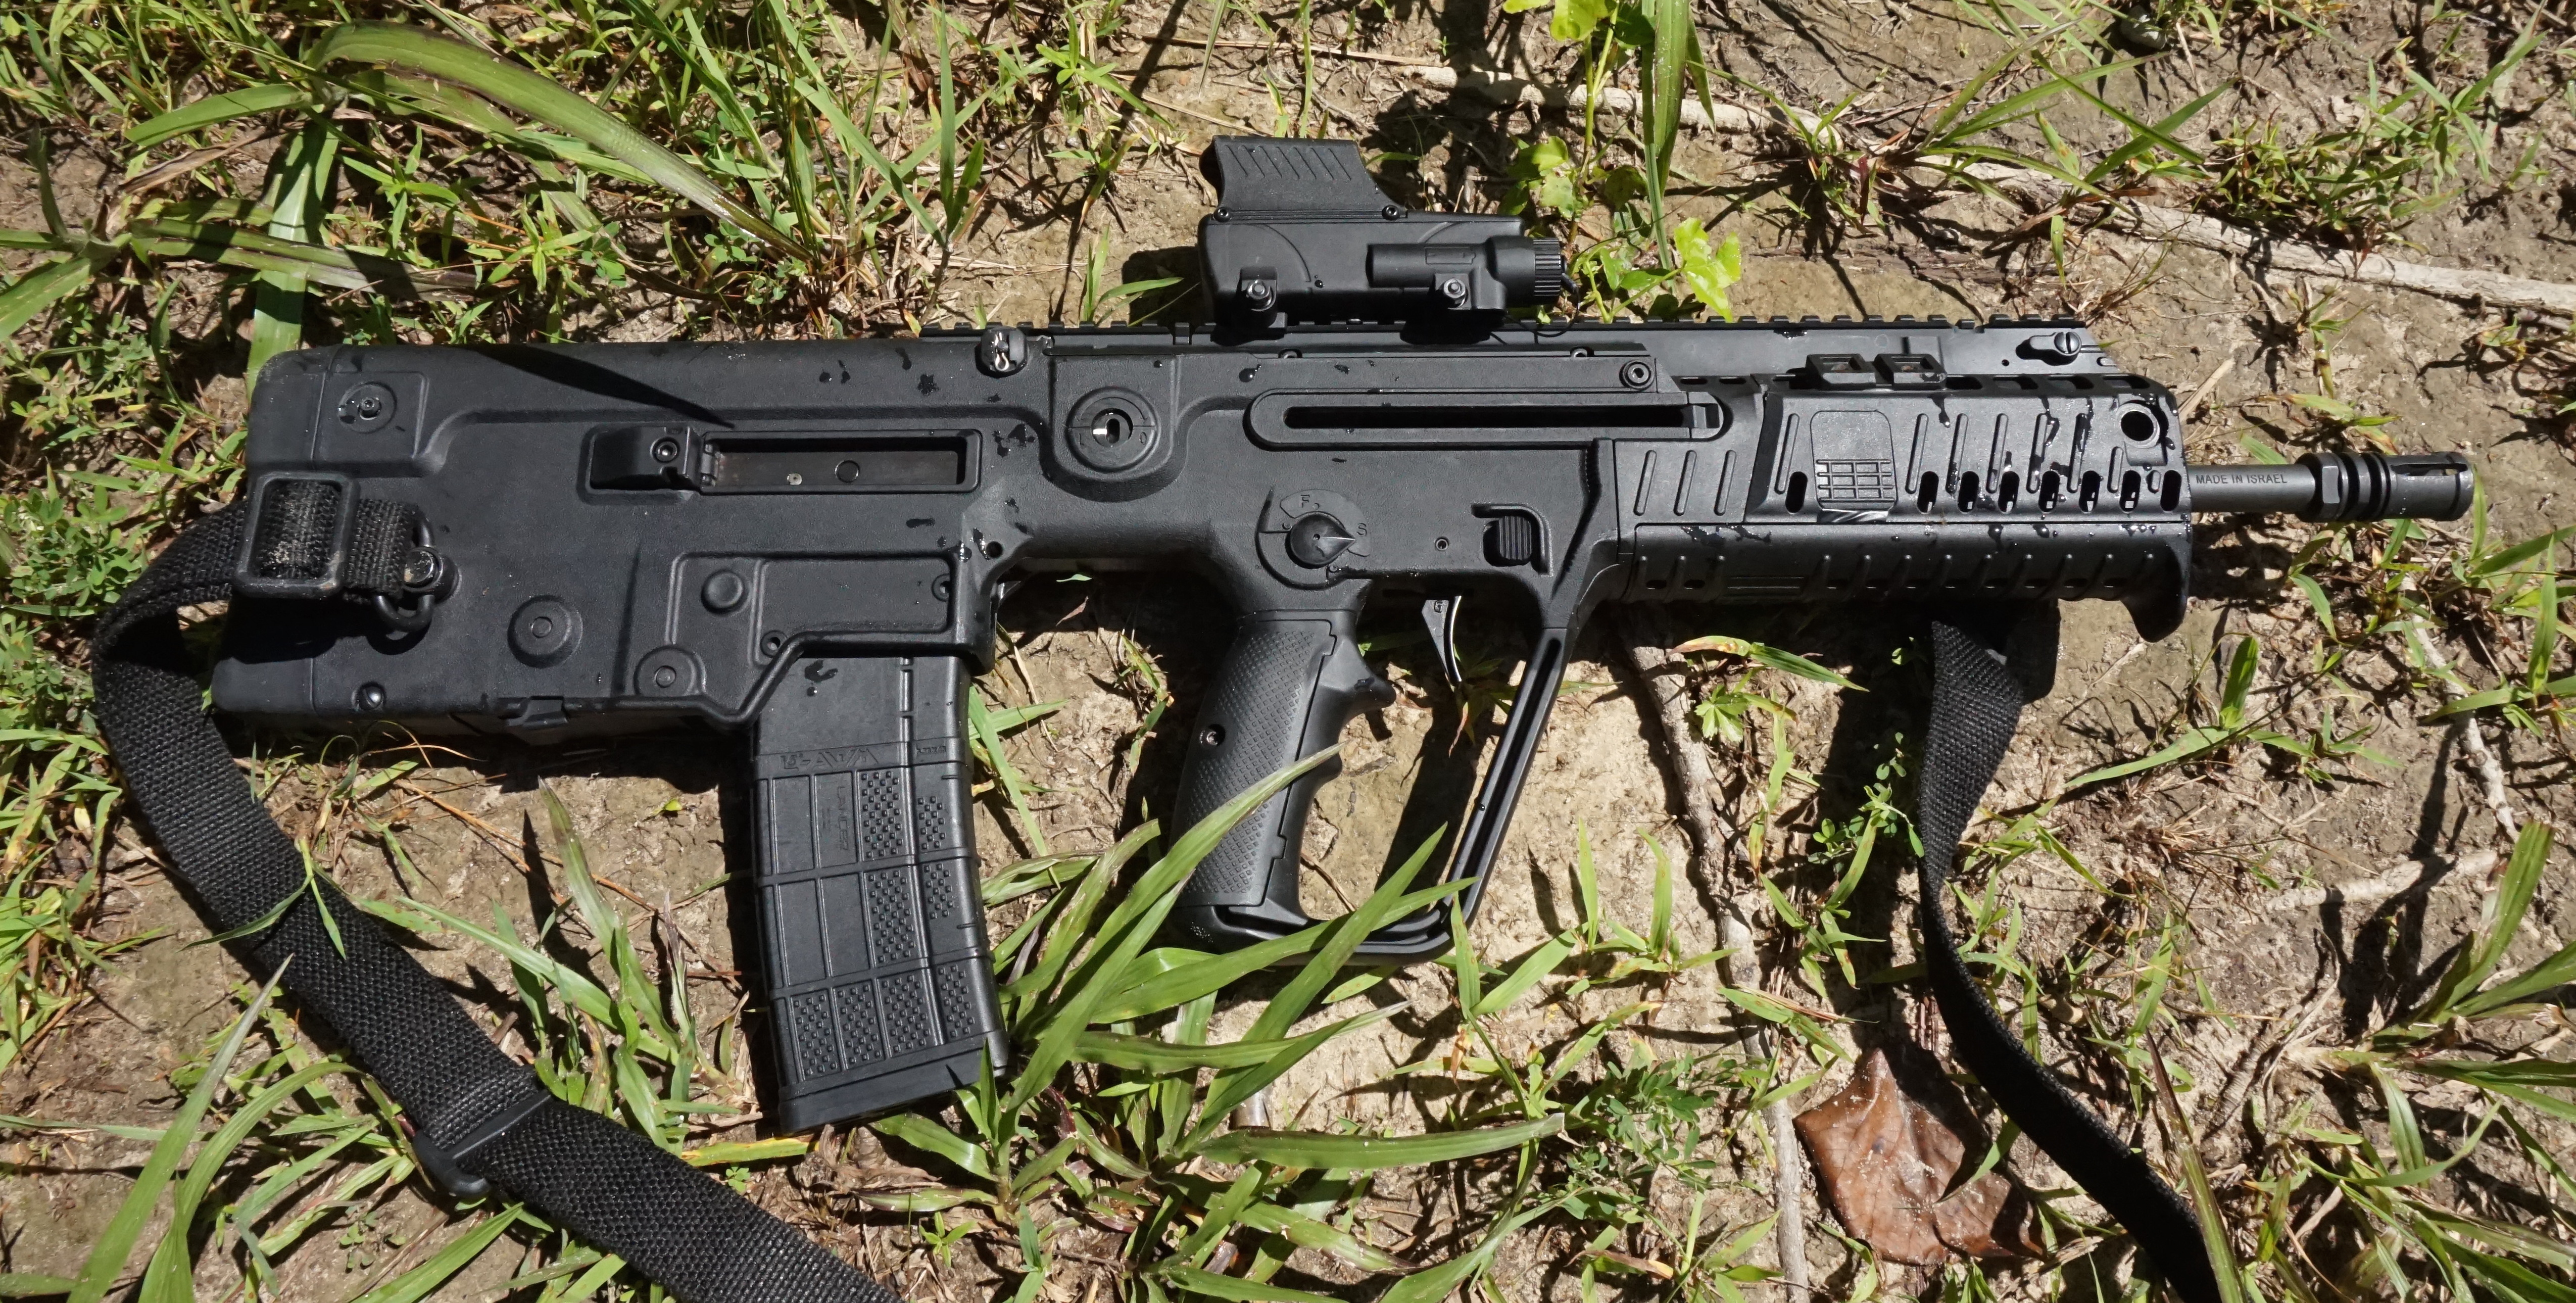 An OD Green or FDE variant of the X95 would blend in much better out in the woods.